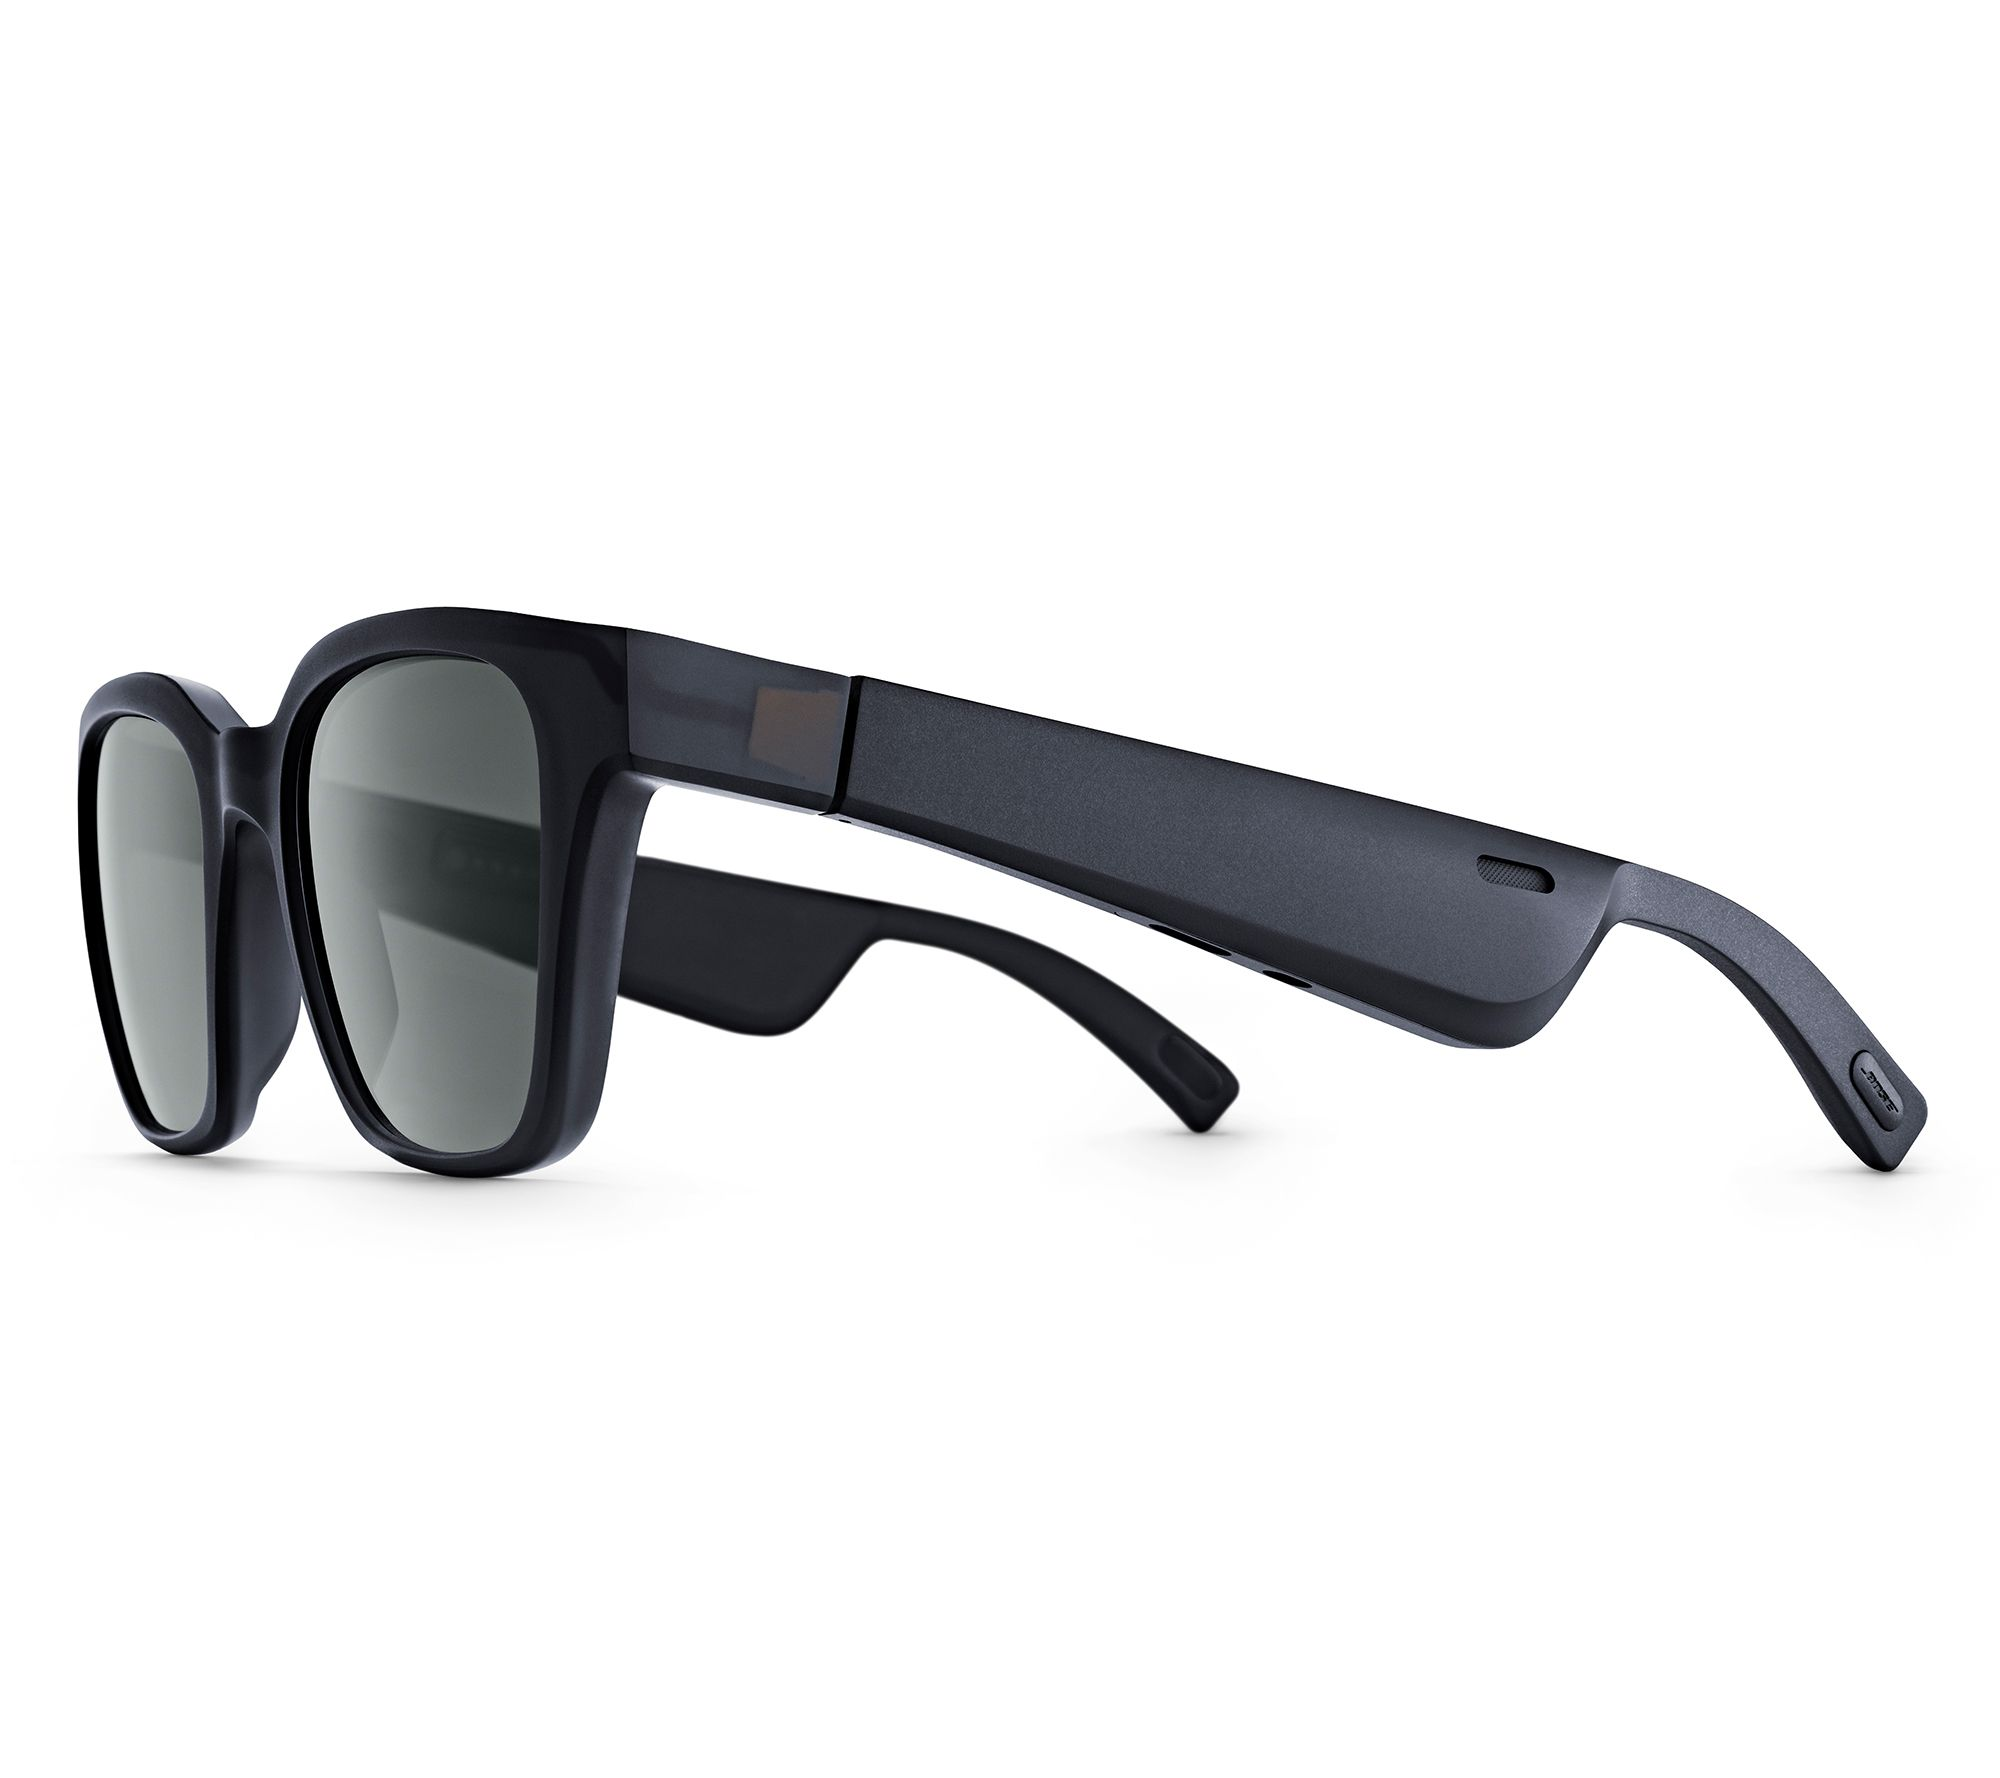 b7783dd533c Bose Frame Alto Audio Sunglasses with Built-In Speakers   Case - Page 1 —  QVC.com